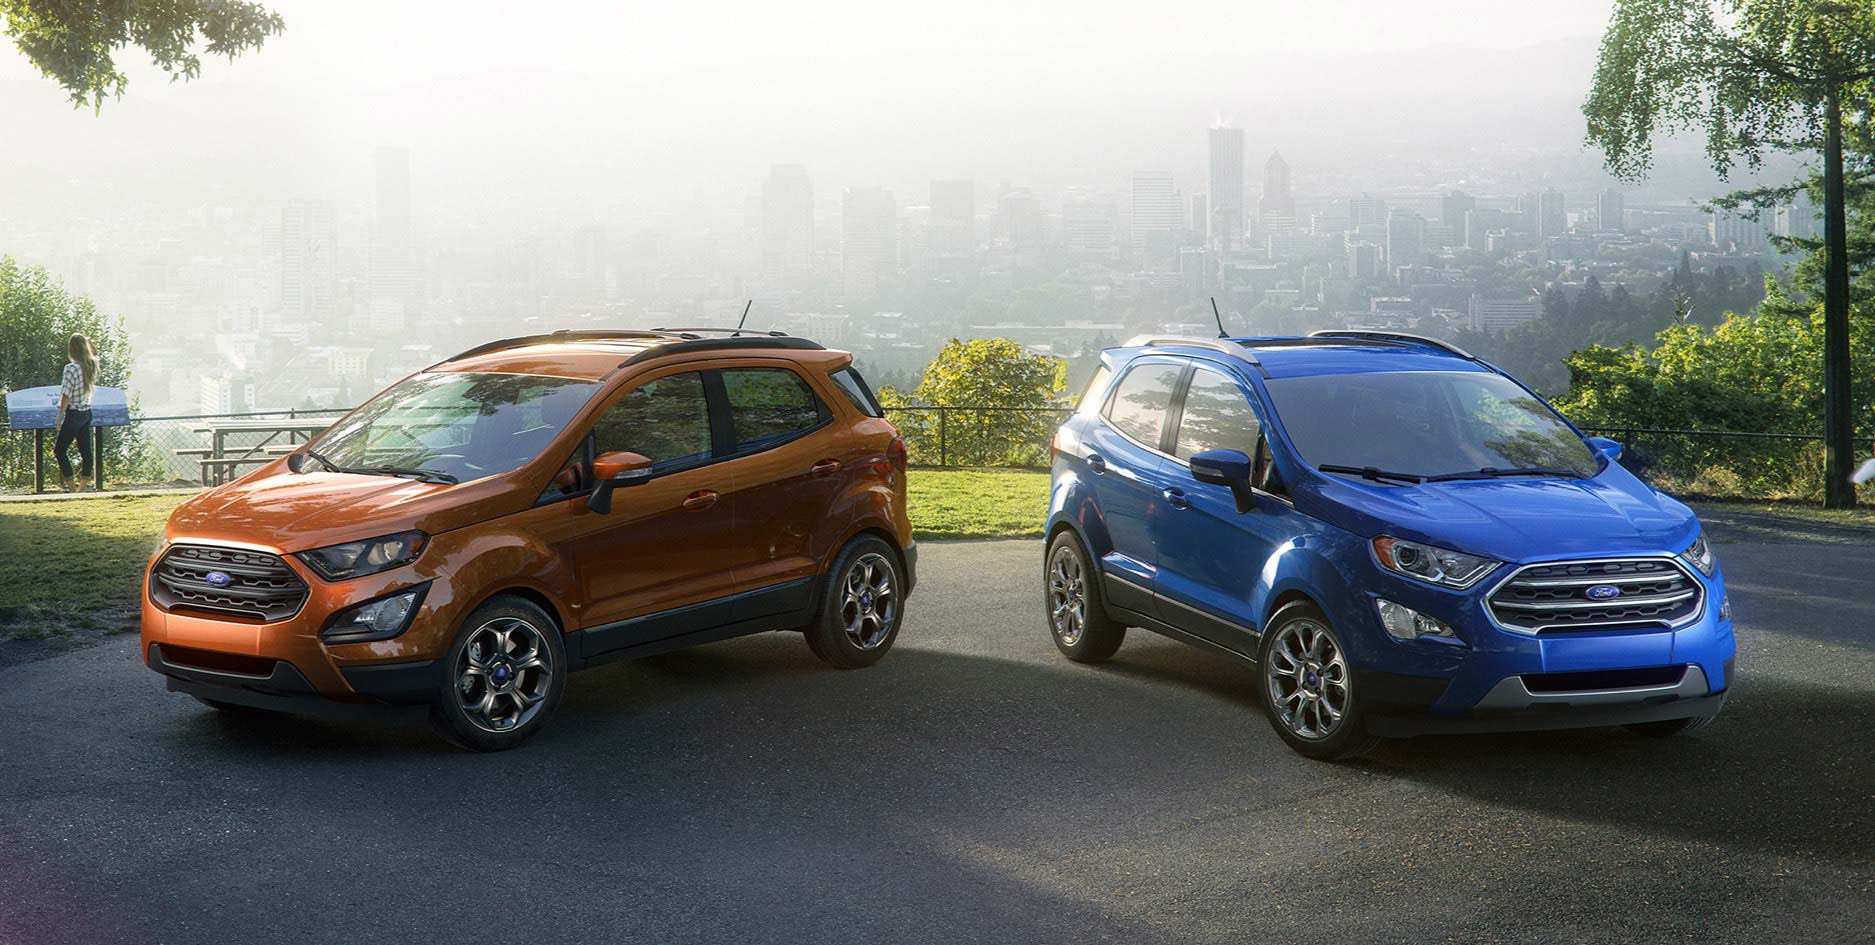 We can expect the ecosport to be introduced in the indian market by june 2017 ecosport ecosport facelift ecosport facelift india ford